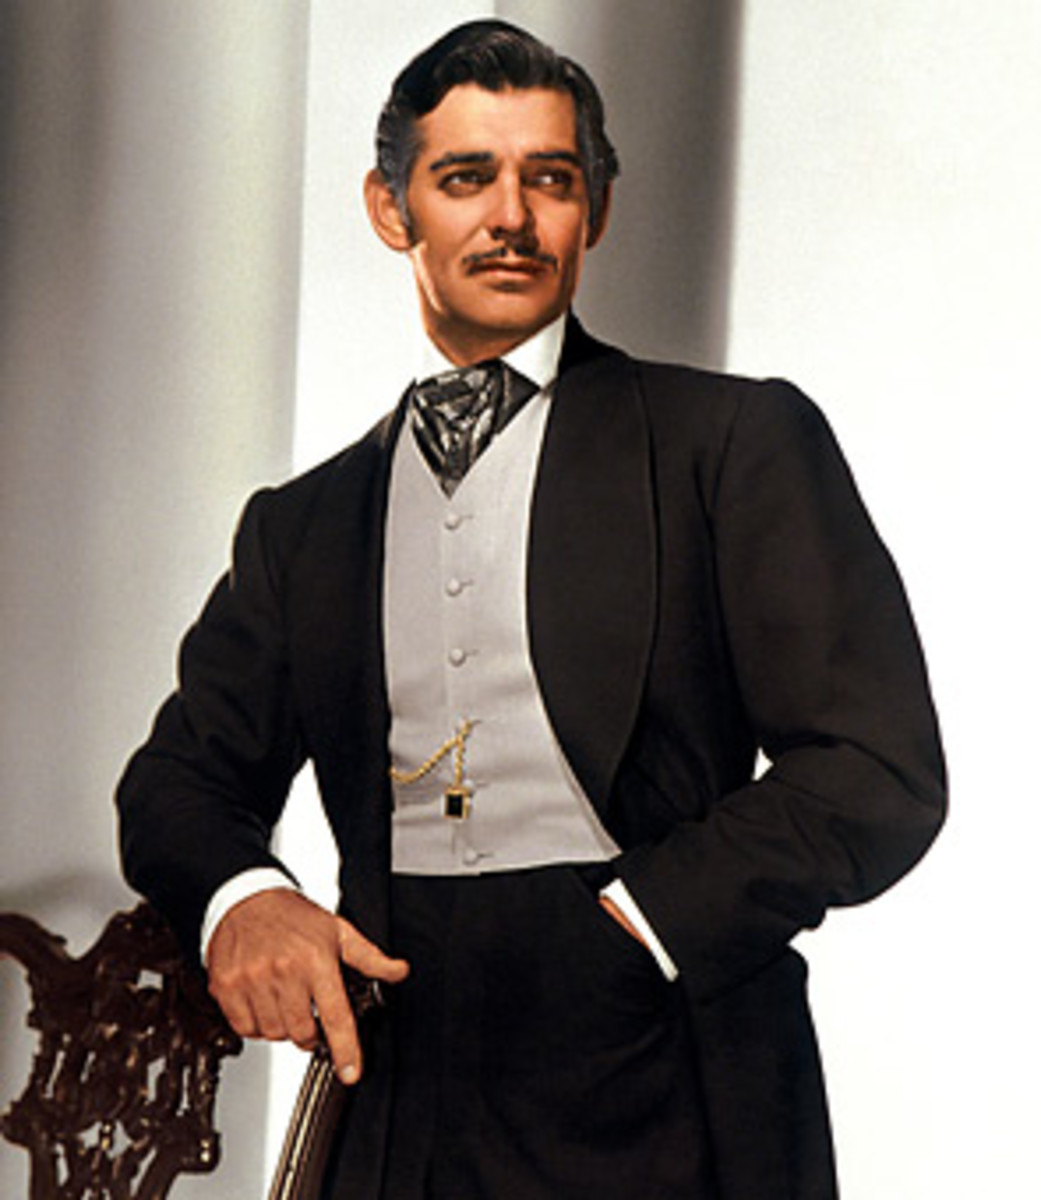 Clark Gable as the original Rhett